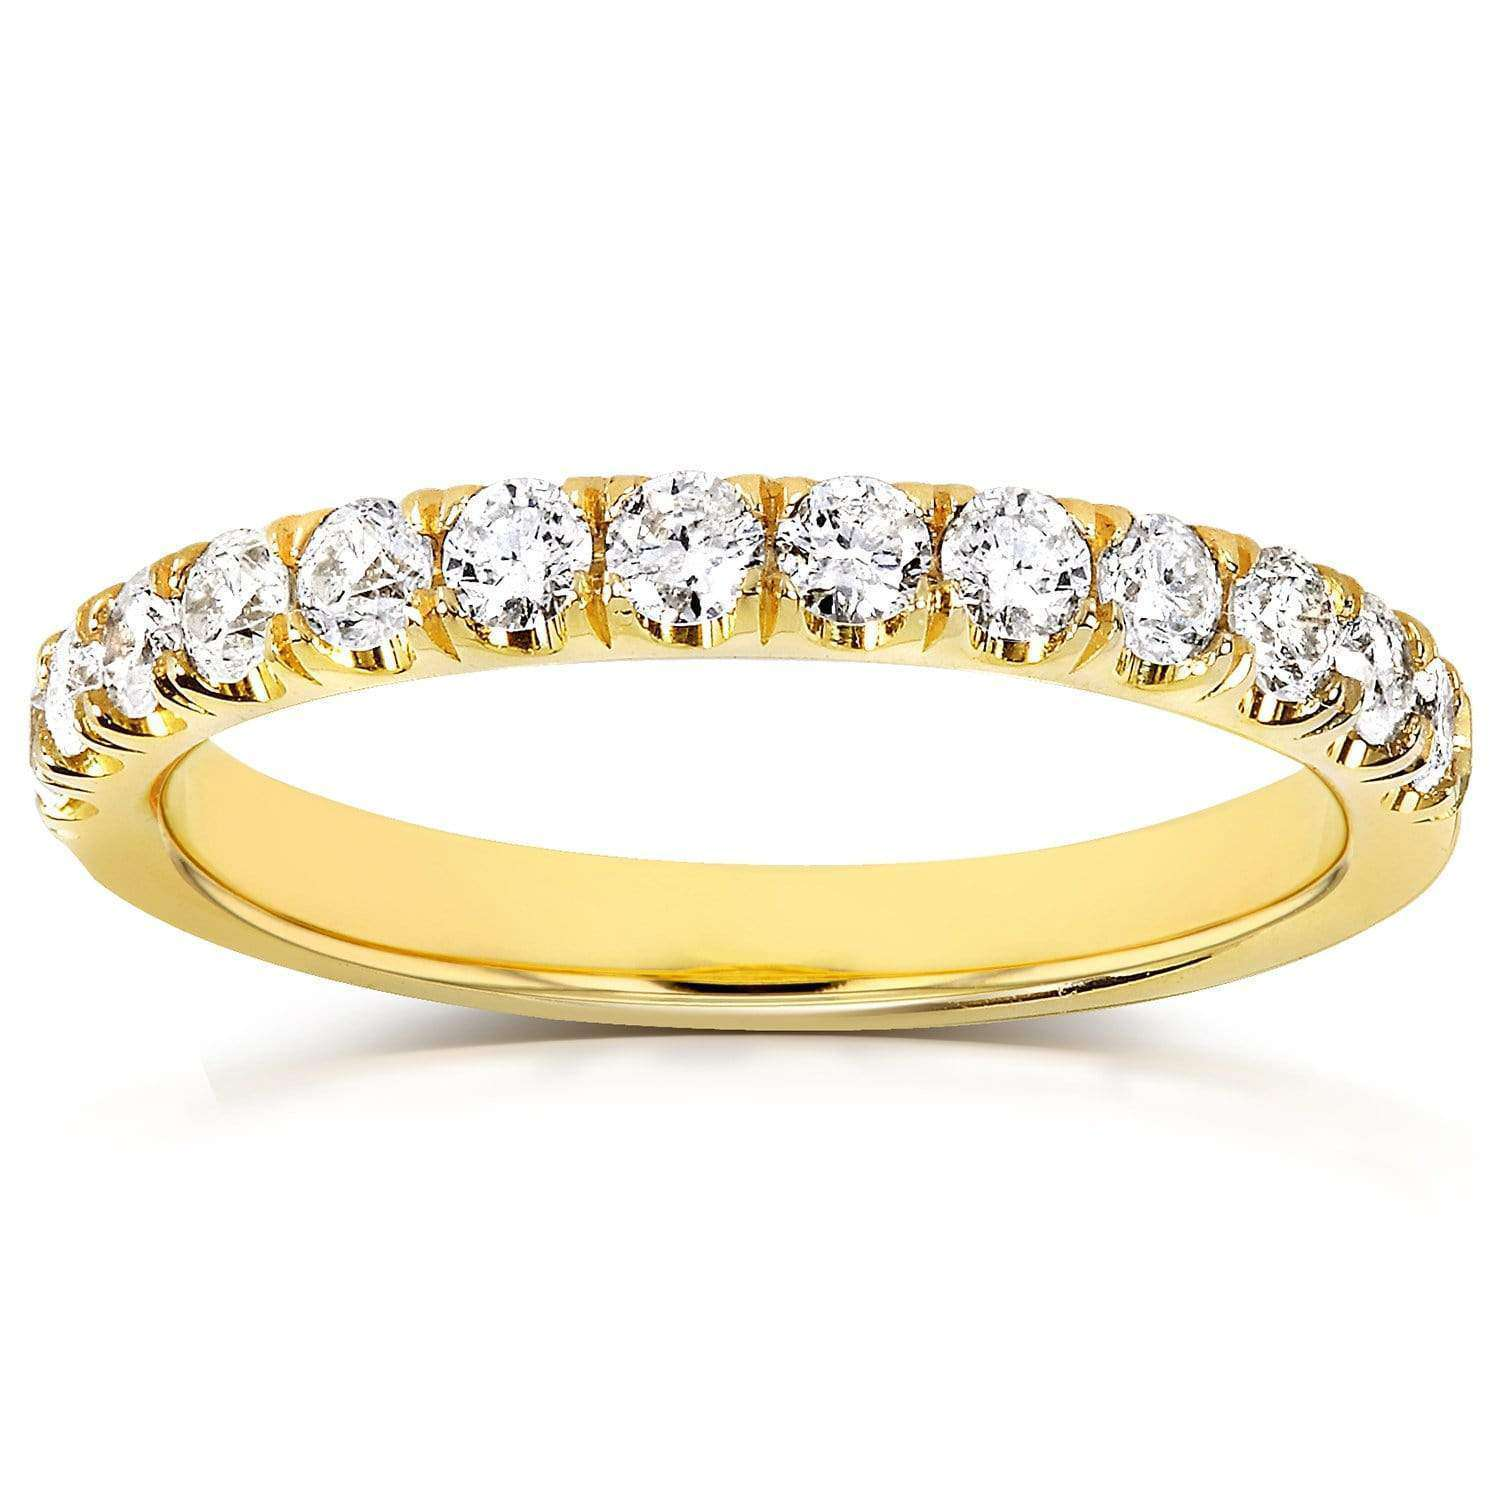 Discounts Comfort Fit French Pave Diamond Yellow Gold Band - 8.5